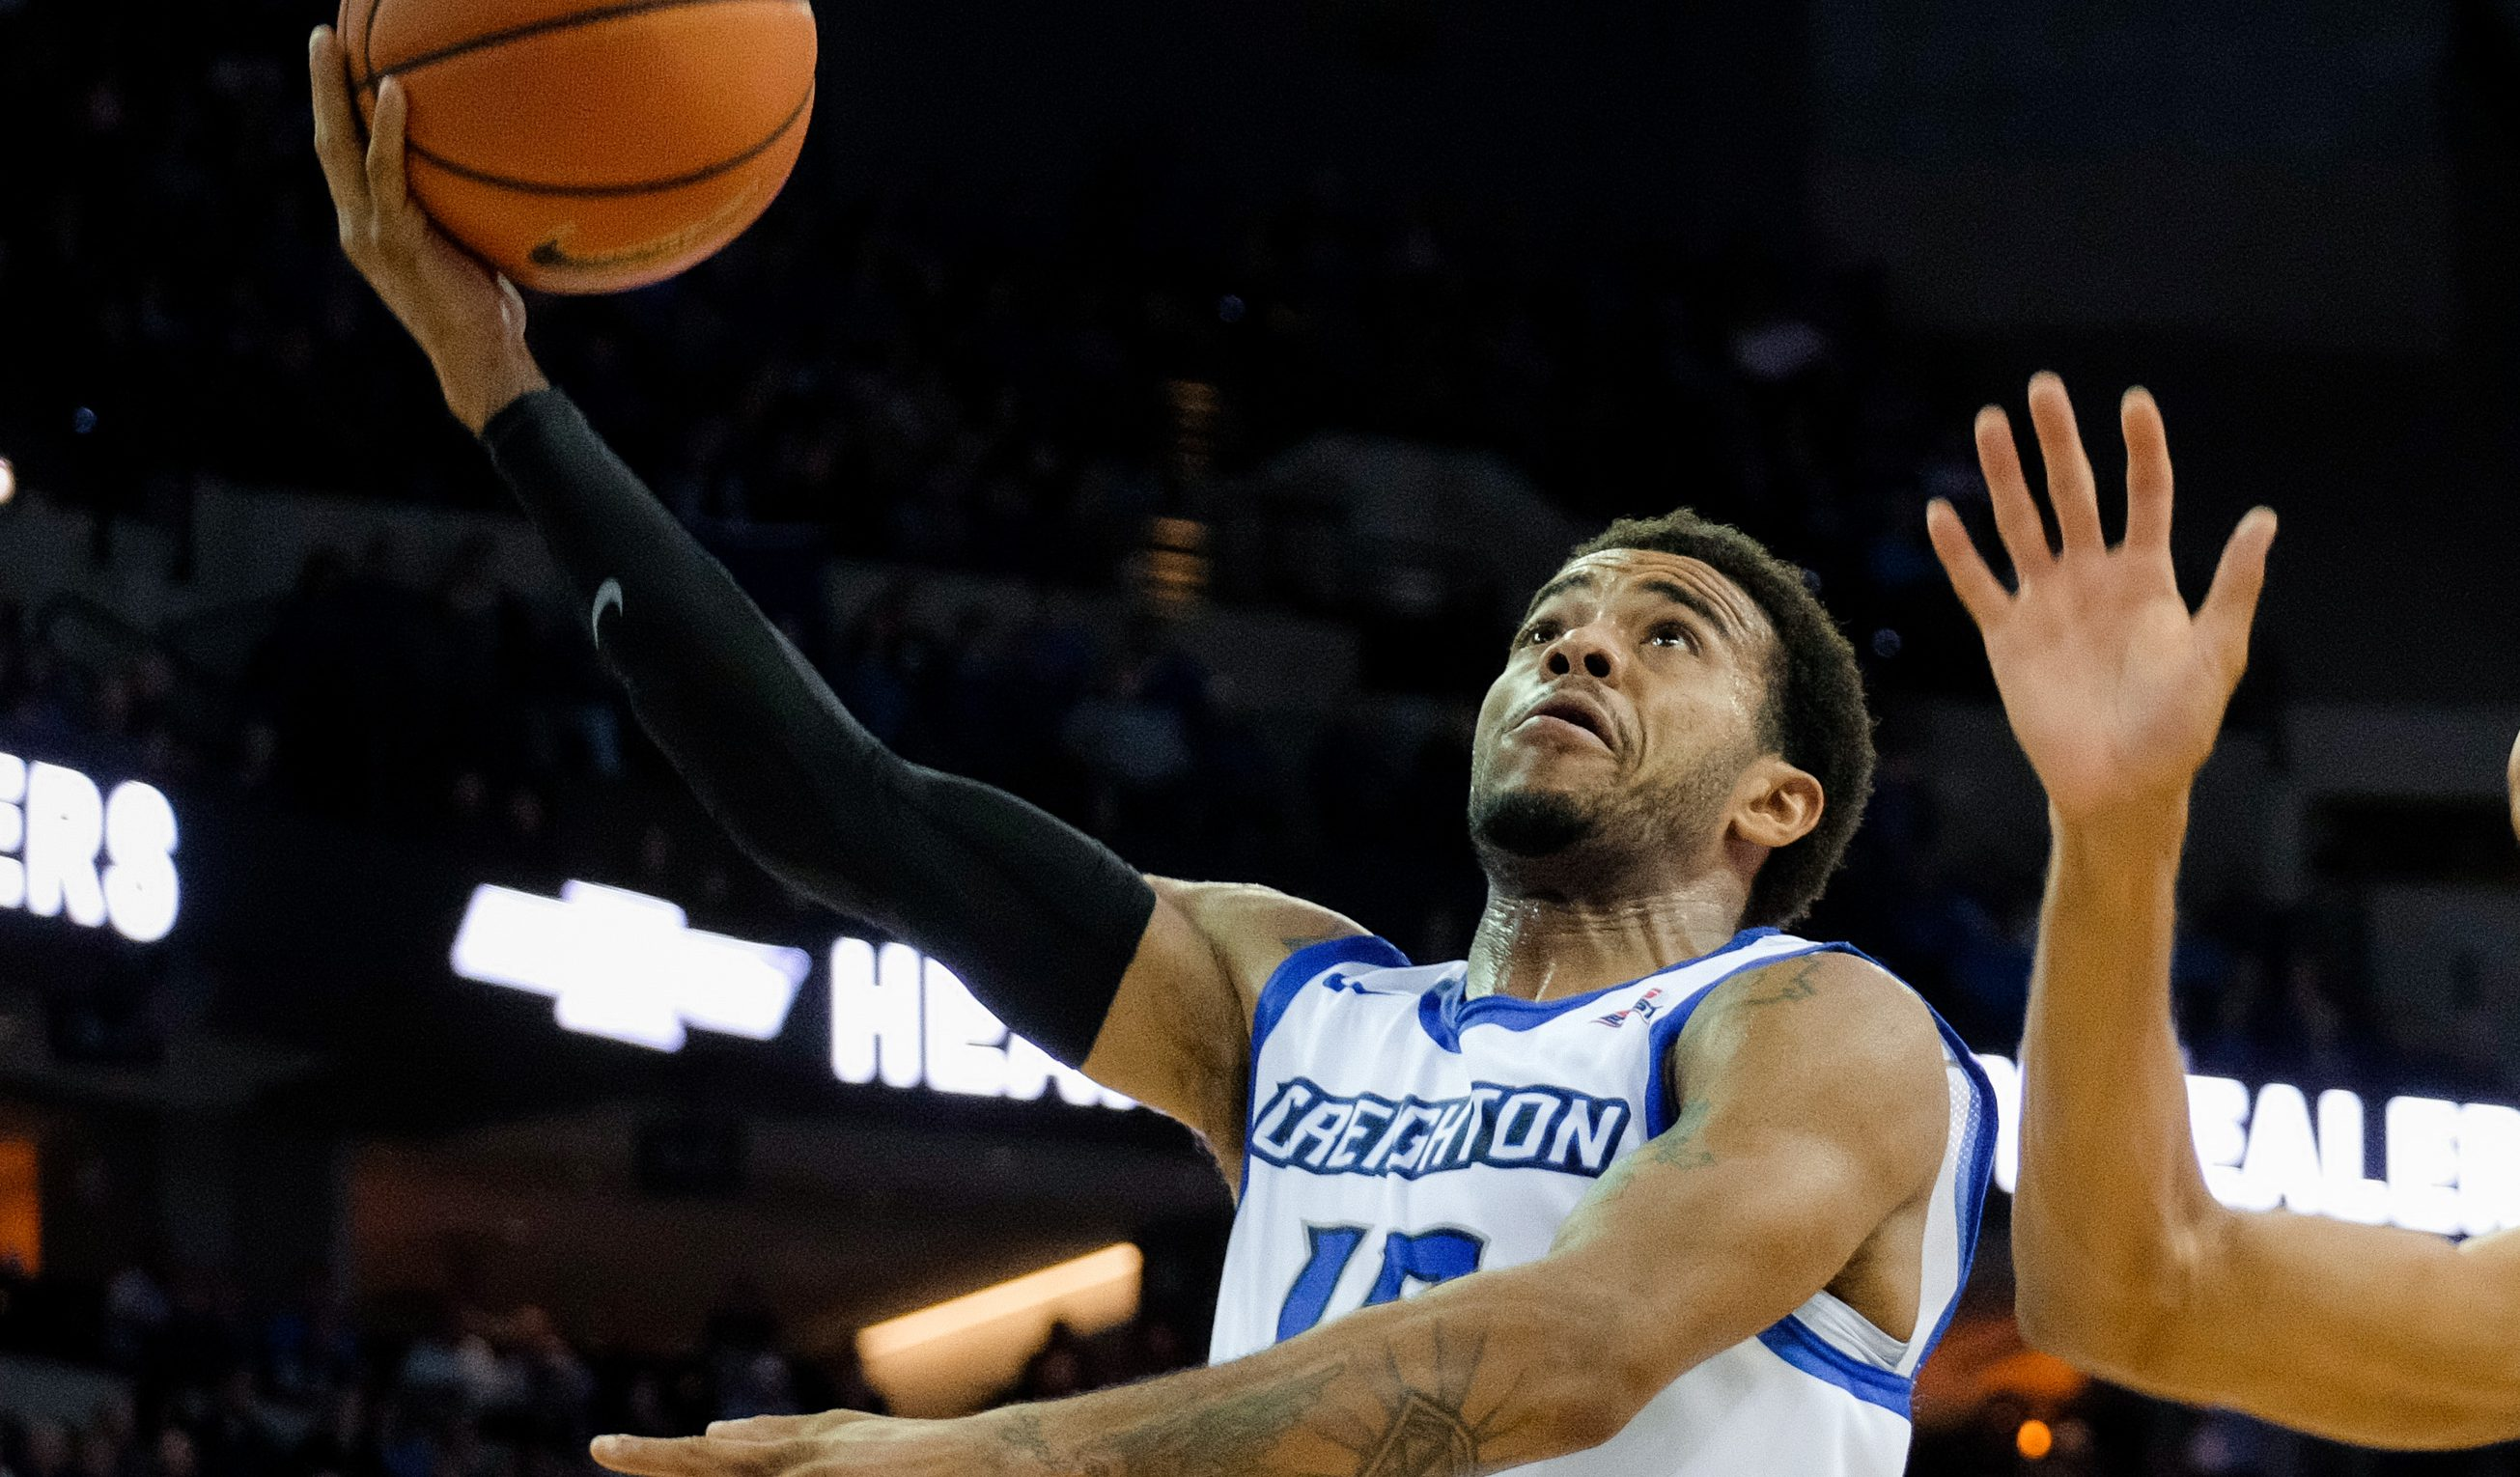 OMAHA, NE - NOVEMBER 15: Maurice Watson Jr. #10 of the Creighton Bluejays drives to the hoop past Jordan Hill #11 of the Wisconsin Badgers during their game at the CenturyLink Center on November 15, 2016 in Omaha, Nebraska. (Photo by Eric Francis/Getty Images)